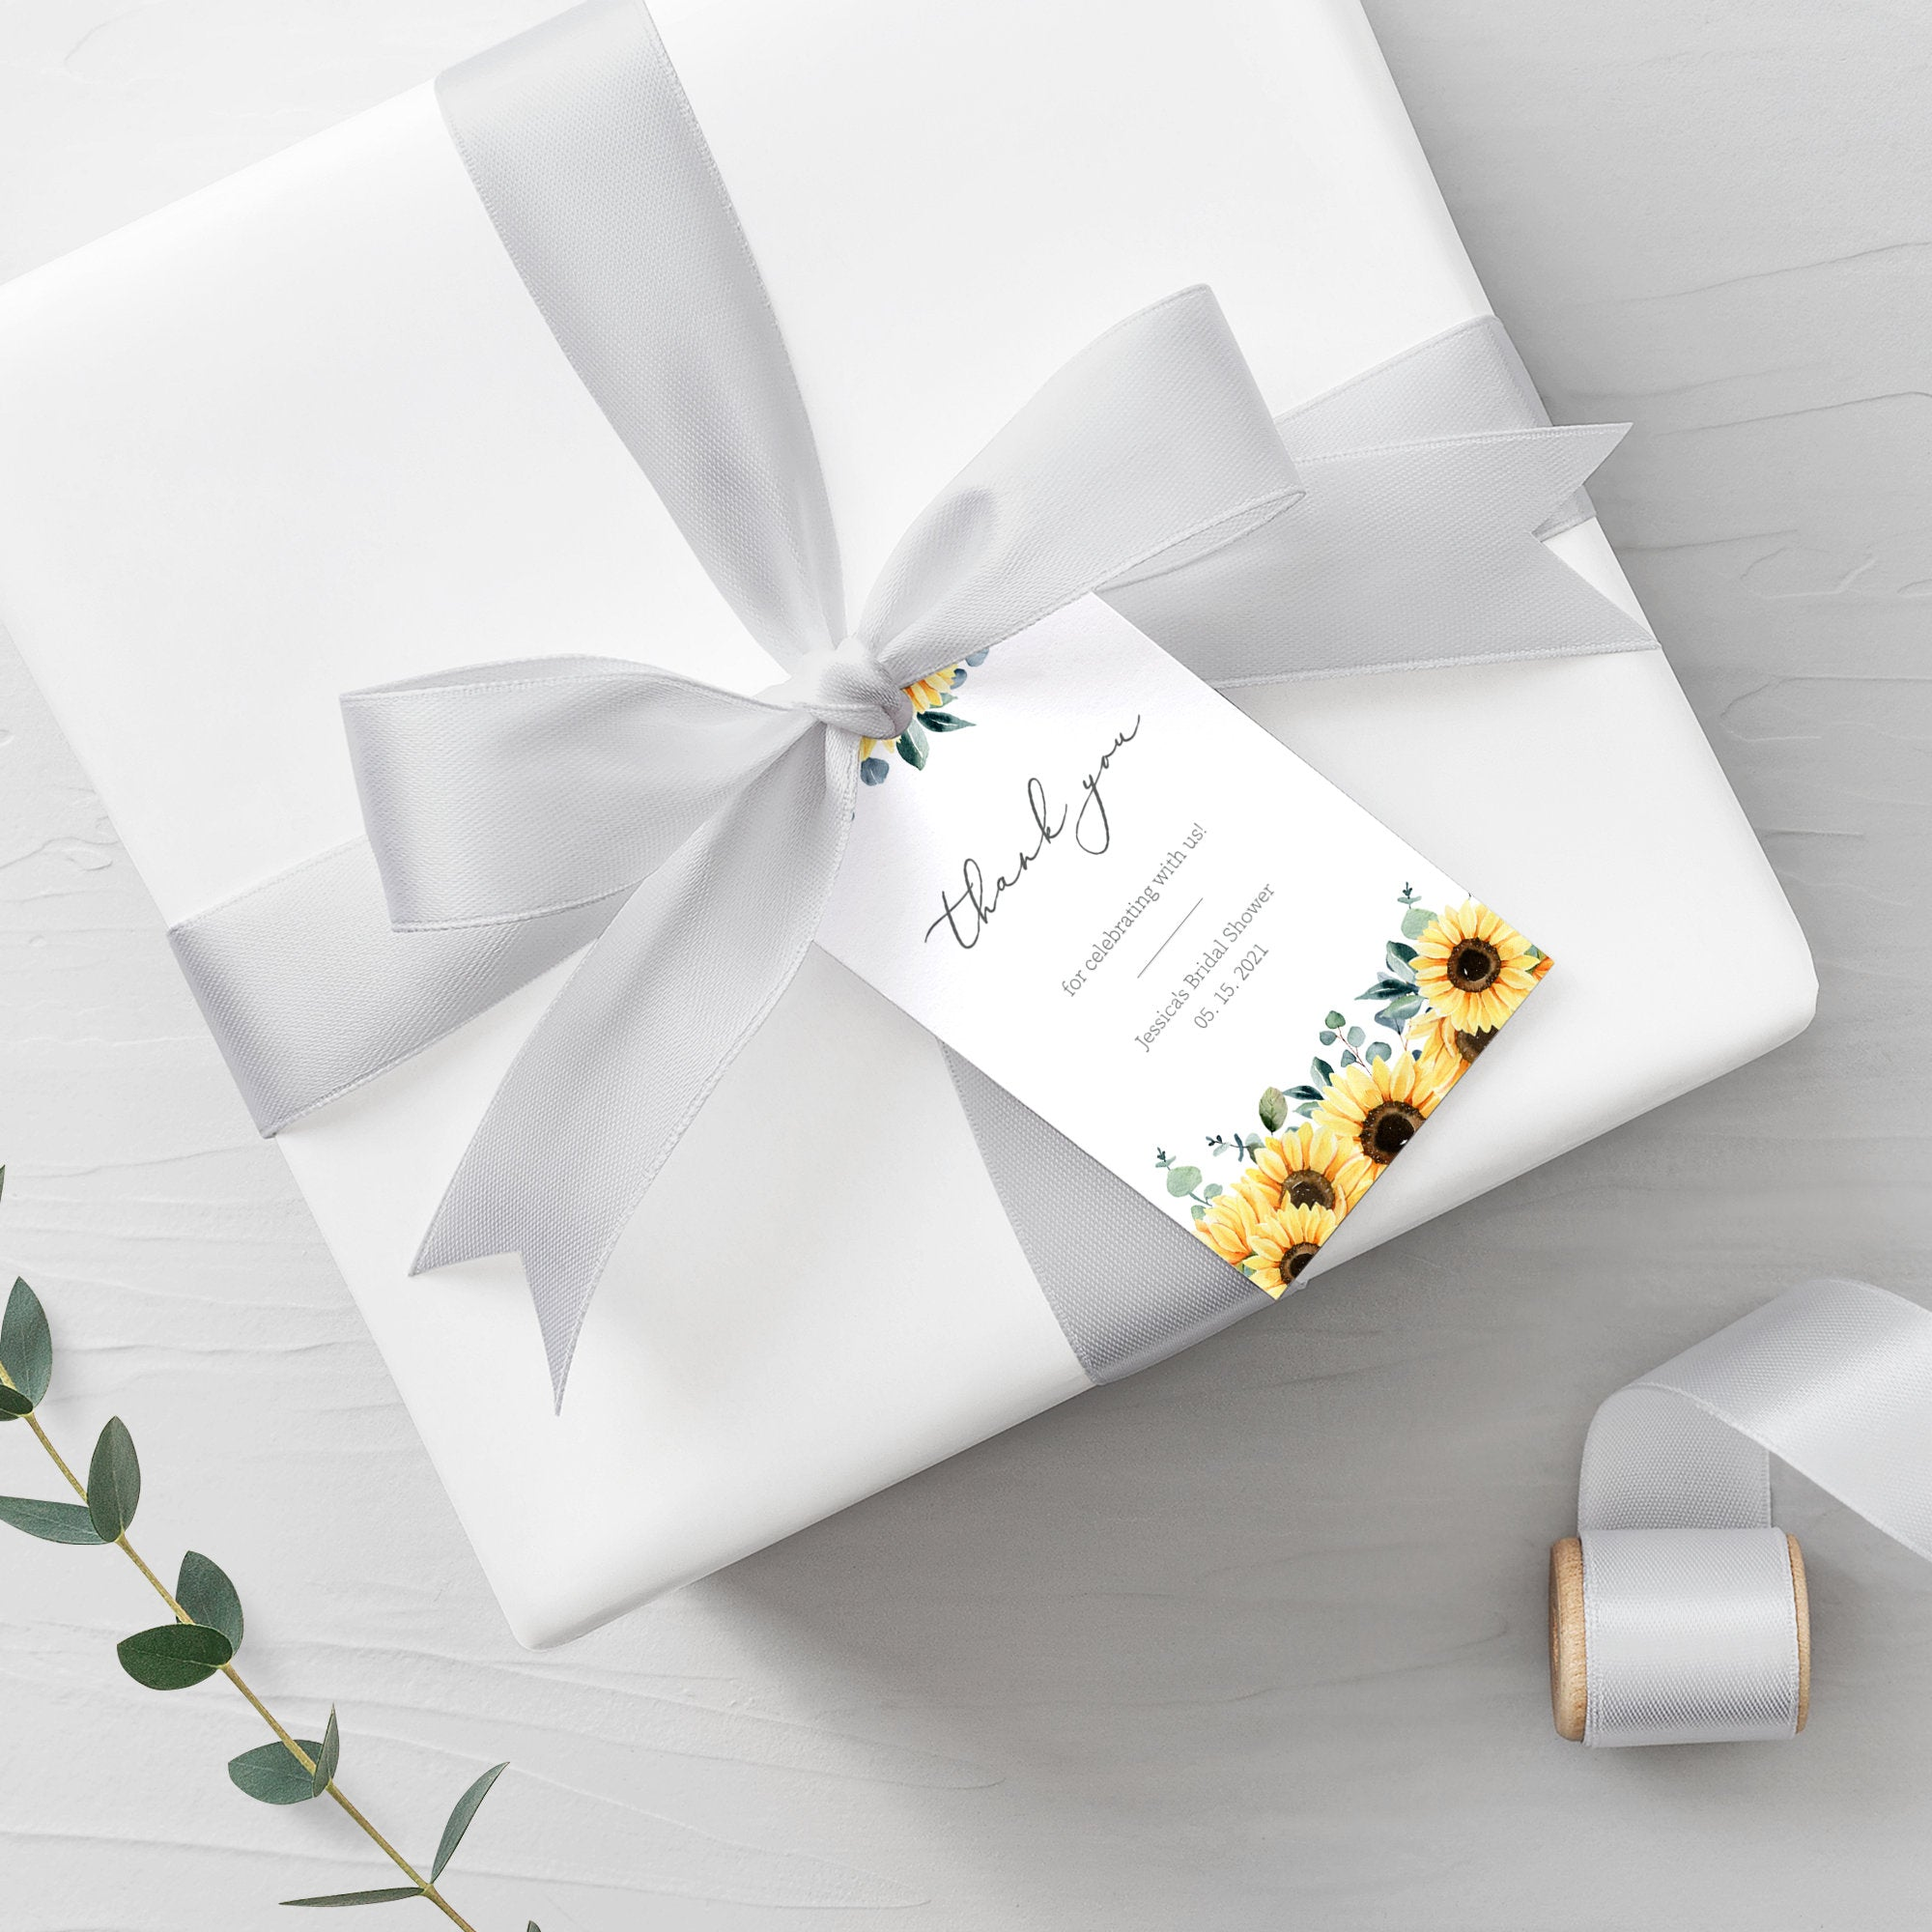 Sunflower Bridal Shower Favor Tags, Sunflower Favor Tags Printable Template, Wedding Shower, Round Square, Editable DIGITAL DOWNLOAD S100